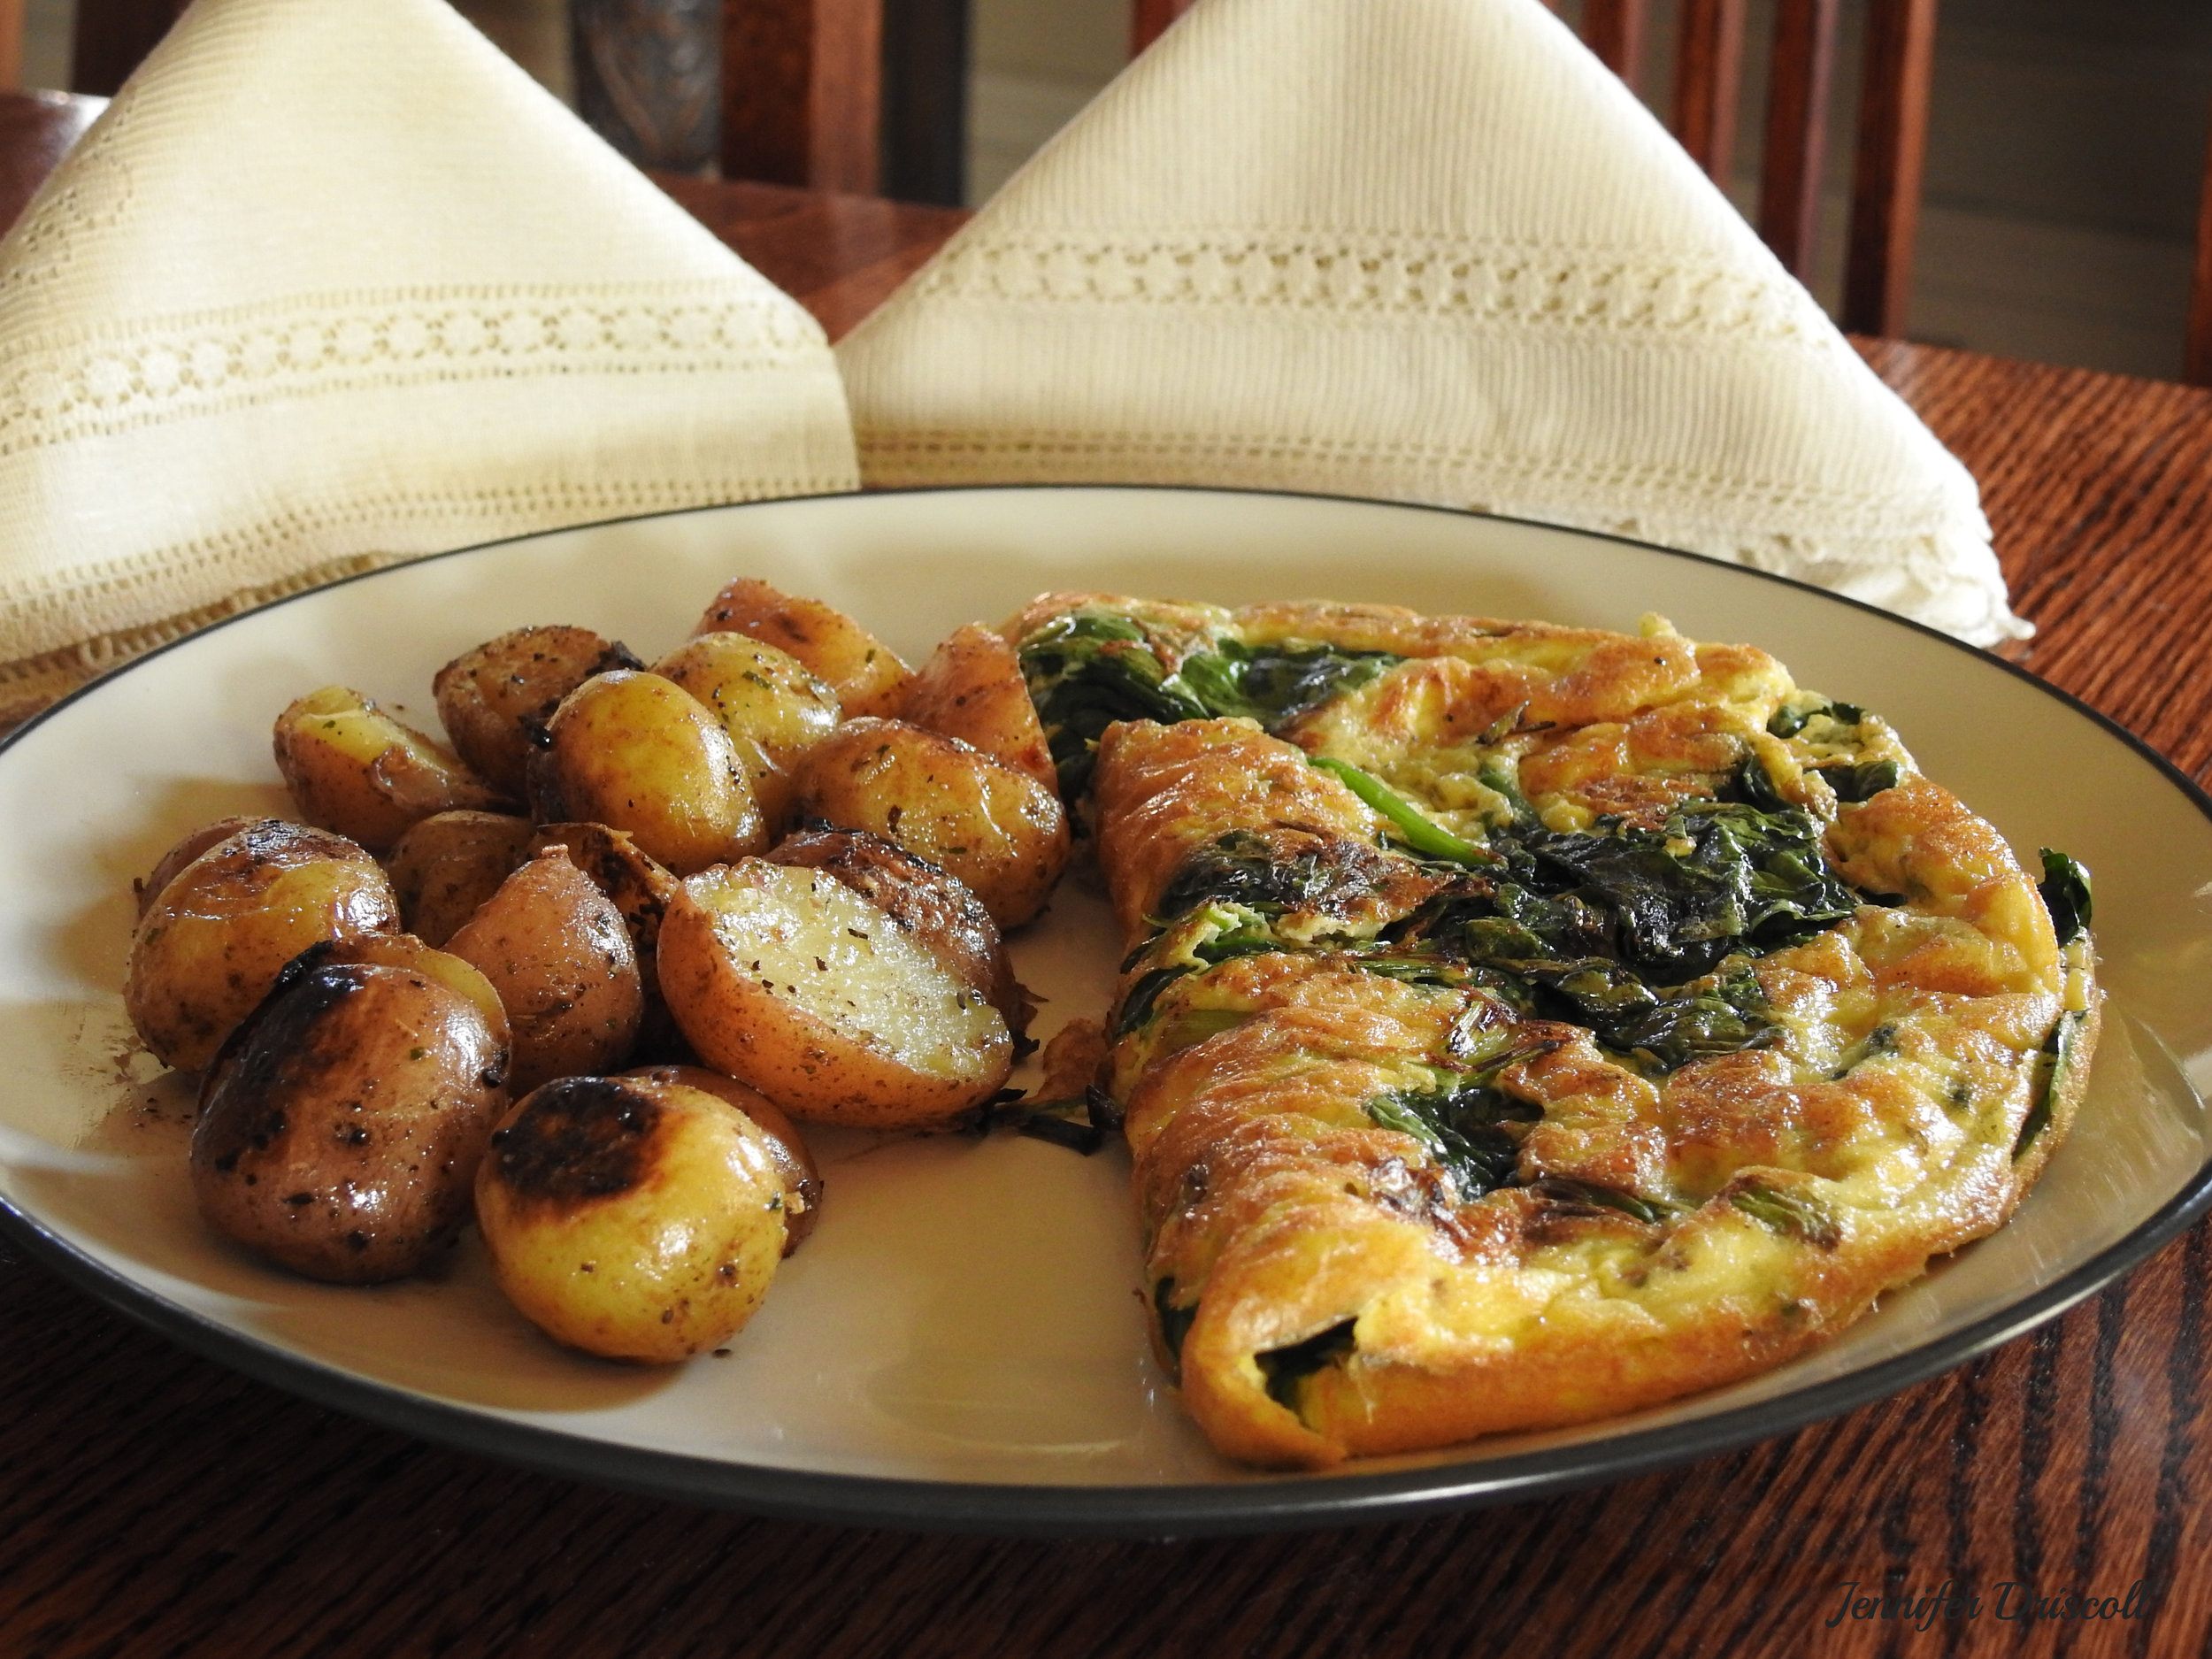 SPINACH AND ONION OMELET - SIDES: CHOOSE BABY POTATOES OR BACON